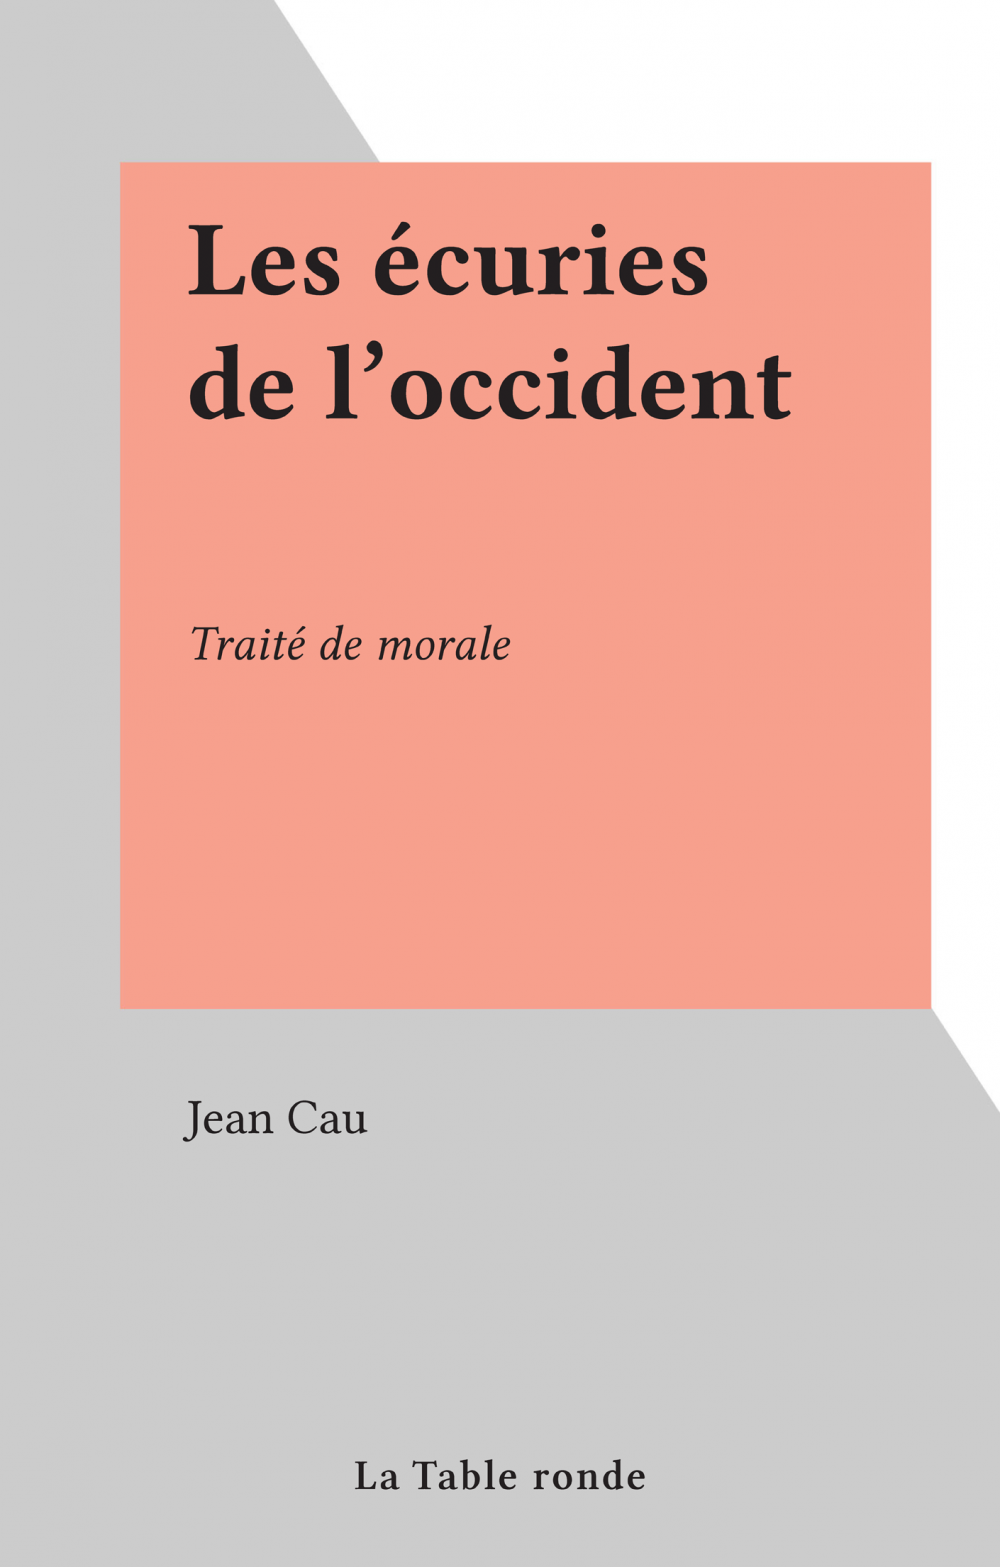 Les écuries de l'occident